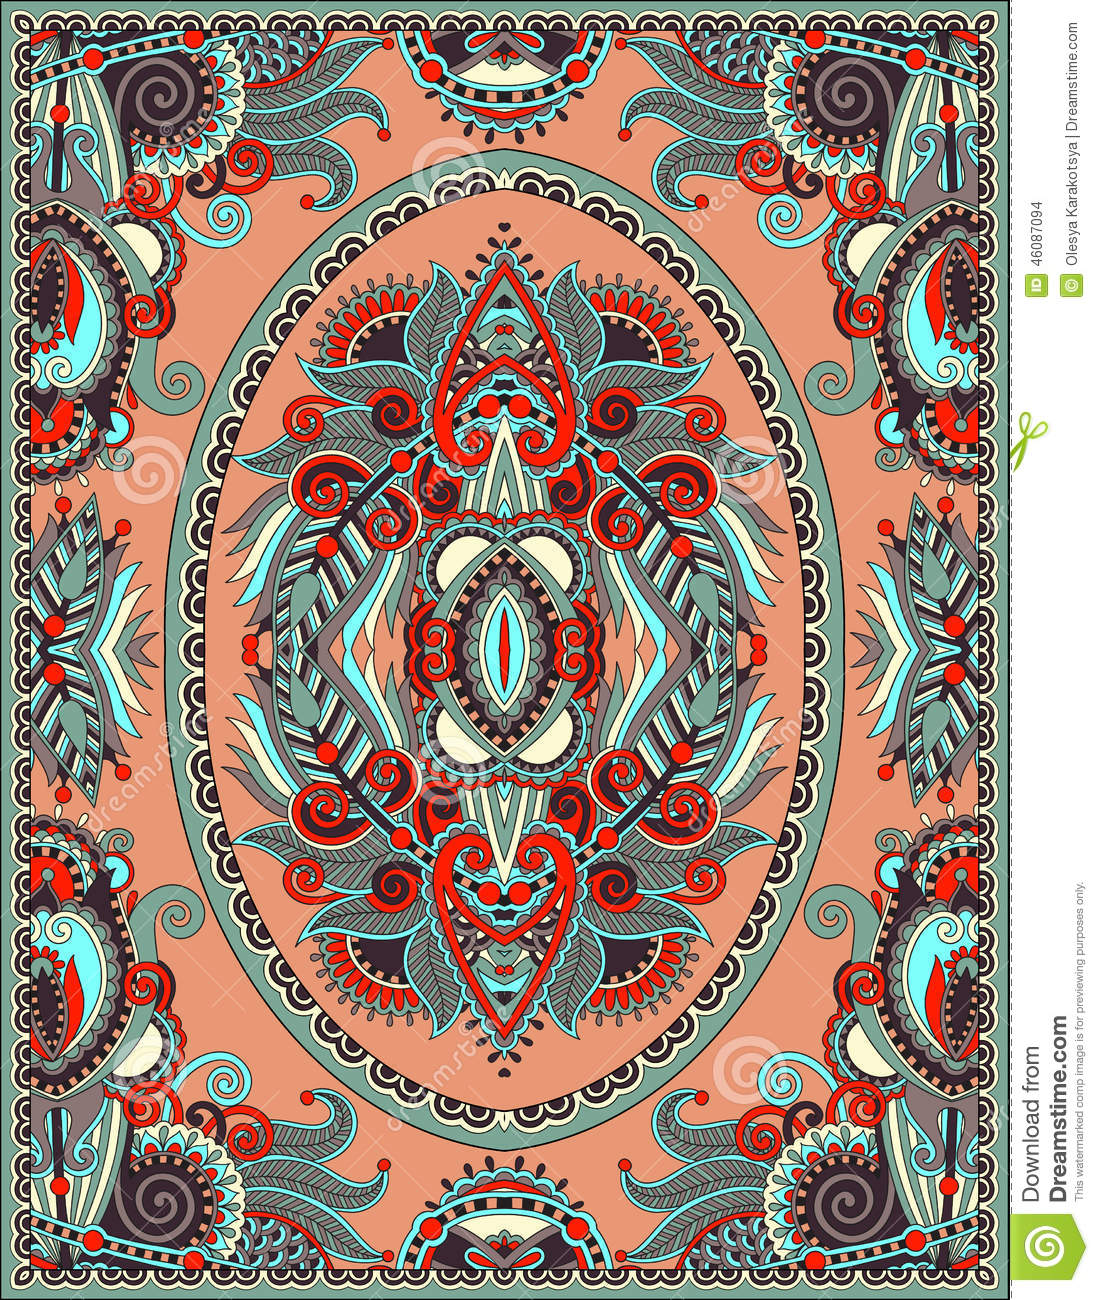 Ukrainian Floral Carpet Design For Print On Canvas Stock